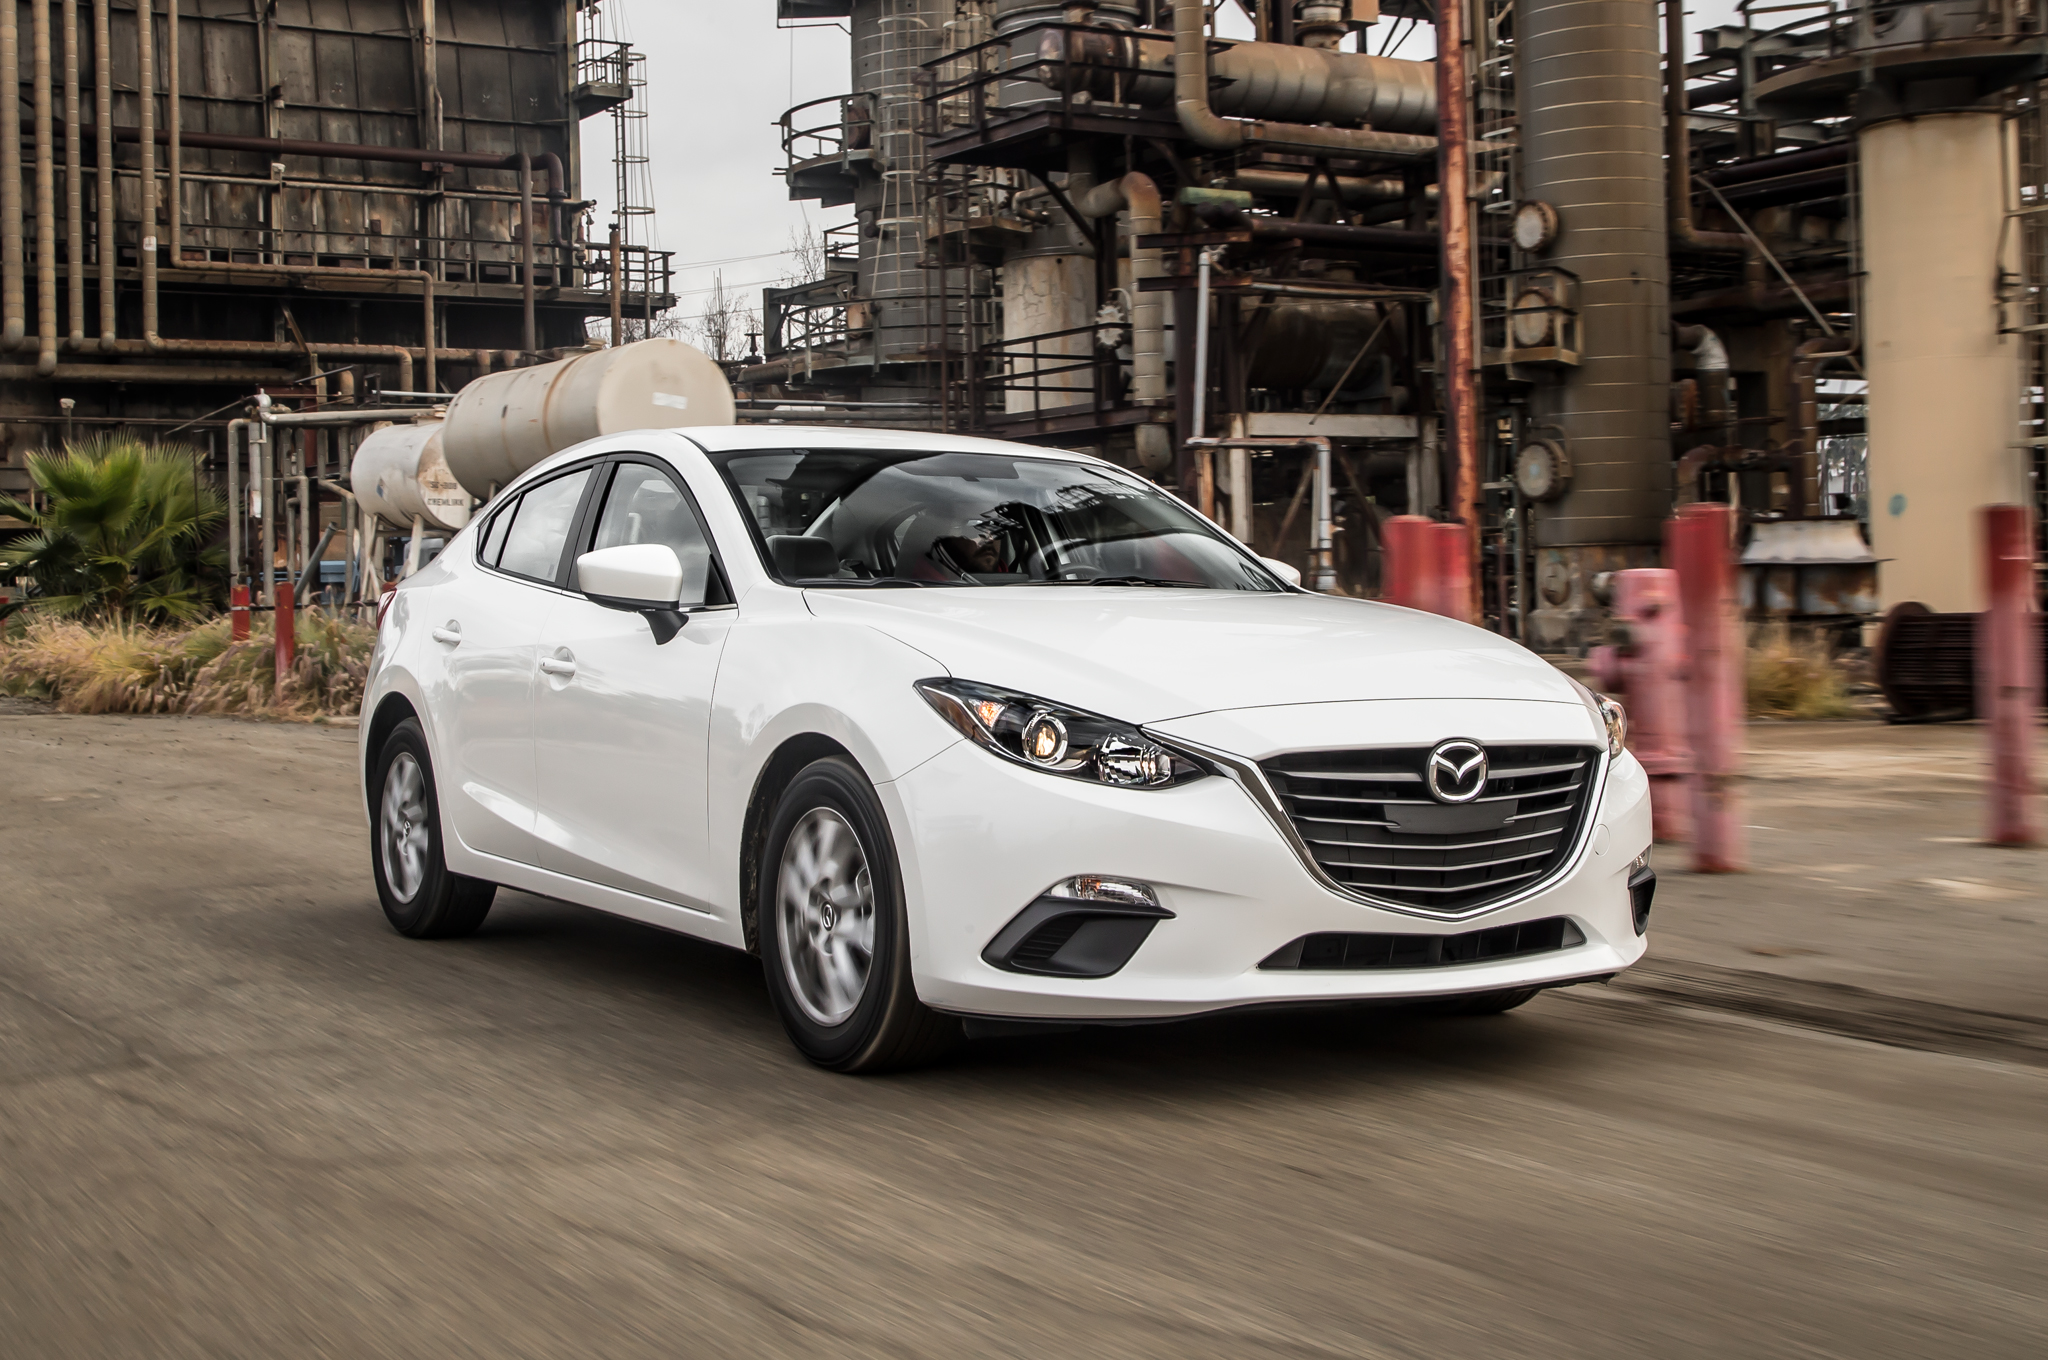 https://enthusiastnetwork.s3.amazonaws.com/uploads/sites/5/2014/08/2014-Mazda3-i-Touring-front-three-quarters-in-motion.jpg?impolicy=entryimage